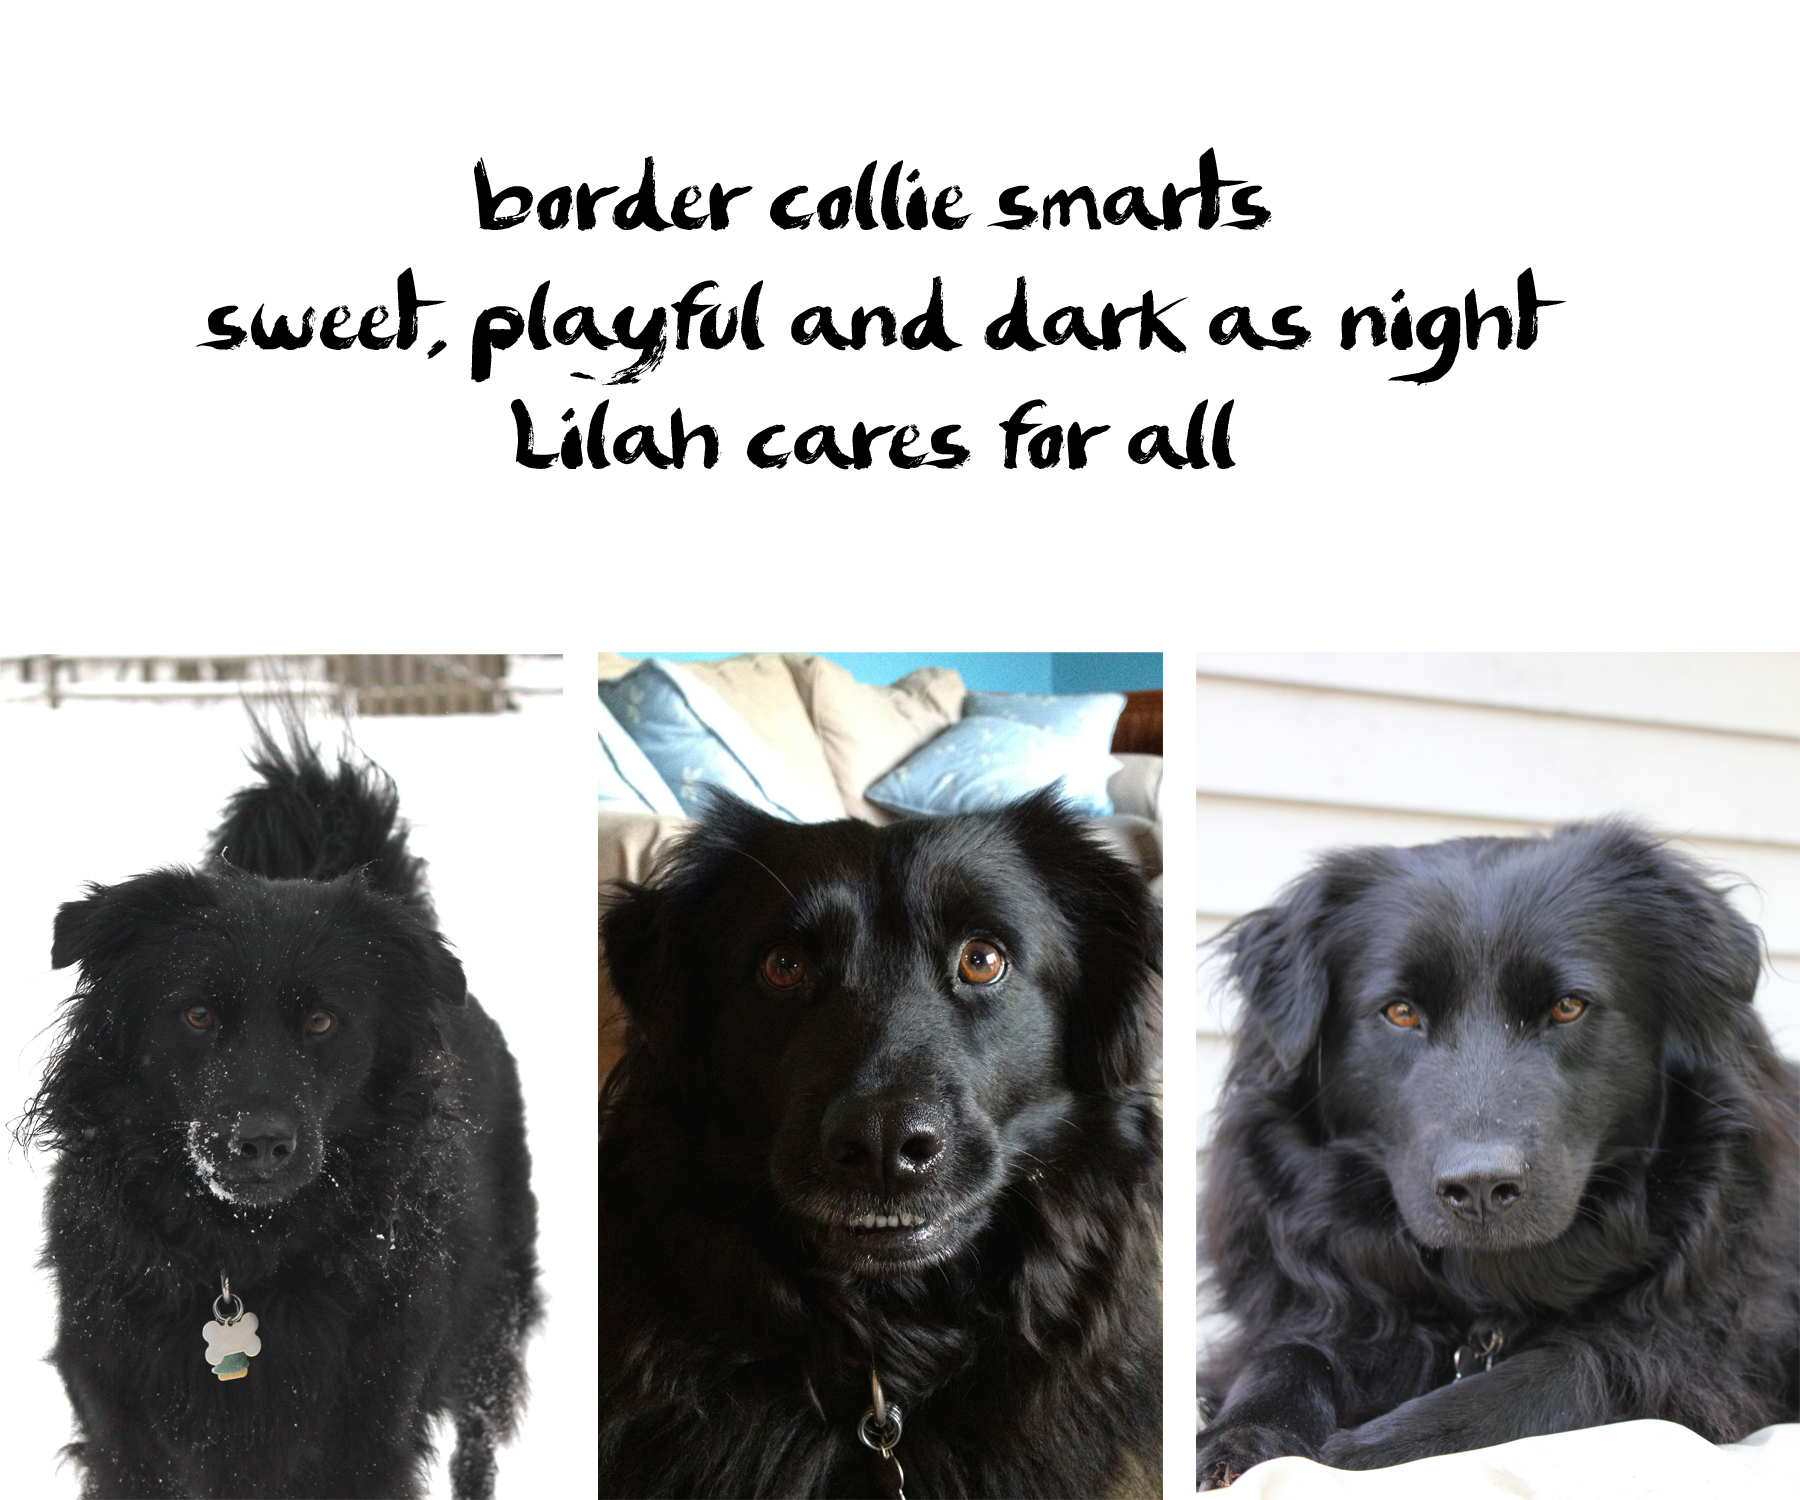 Lilah dog haiku: border collie smarts / sweet, playful and dark as night / Lilah cares for all